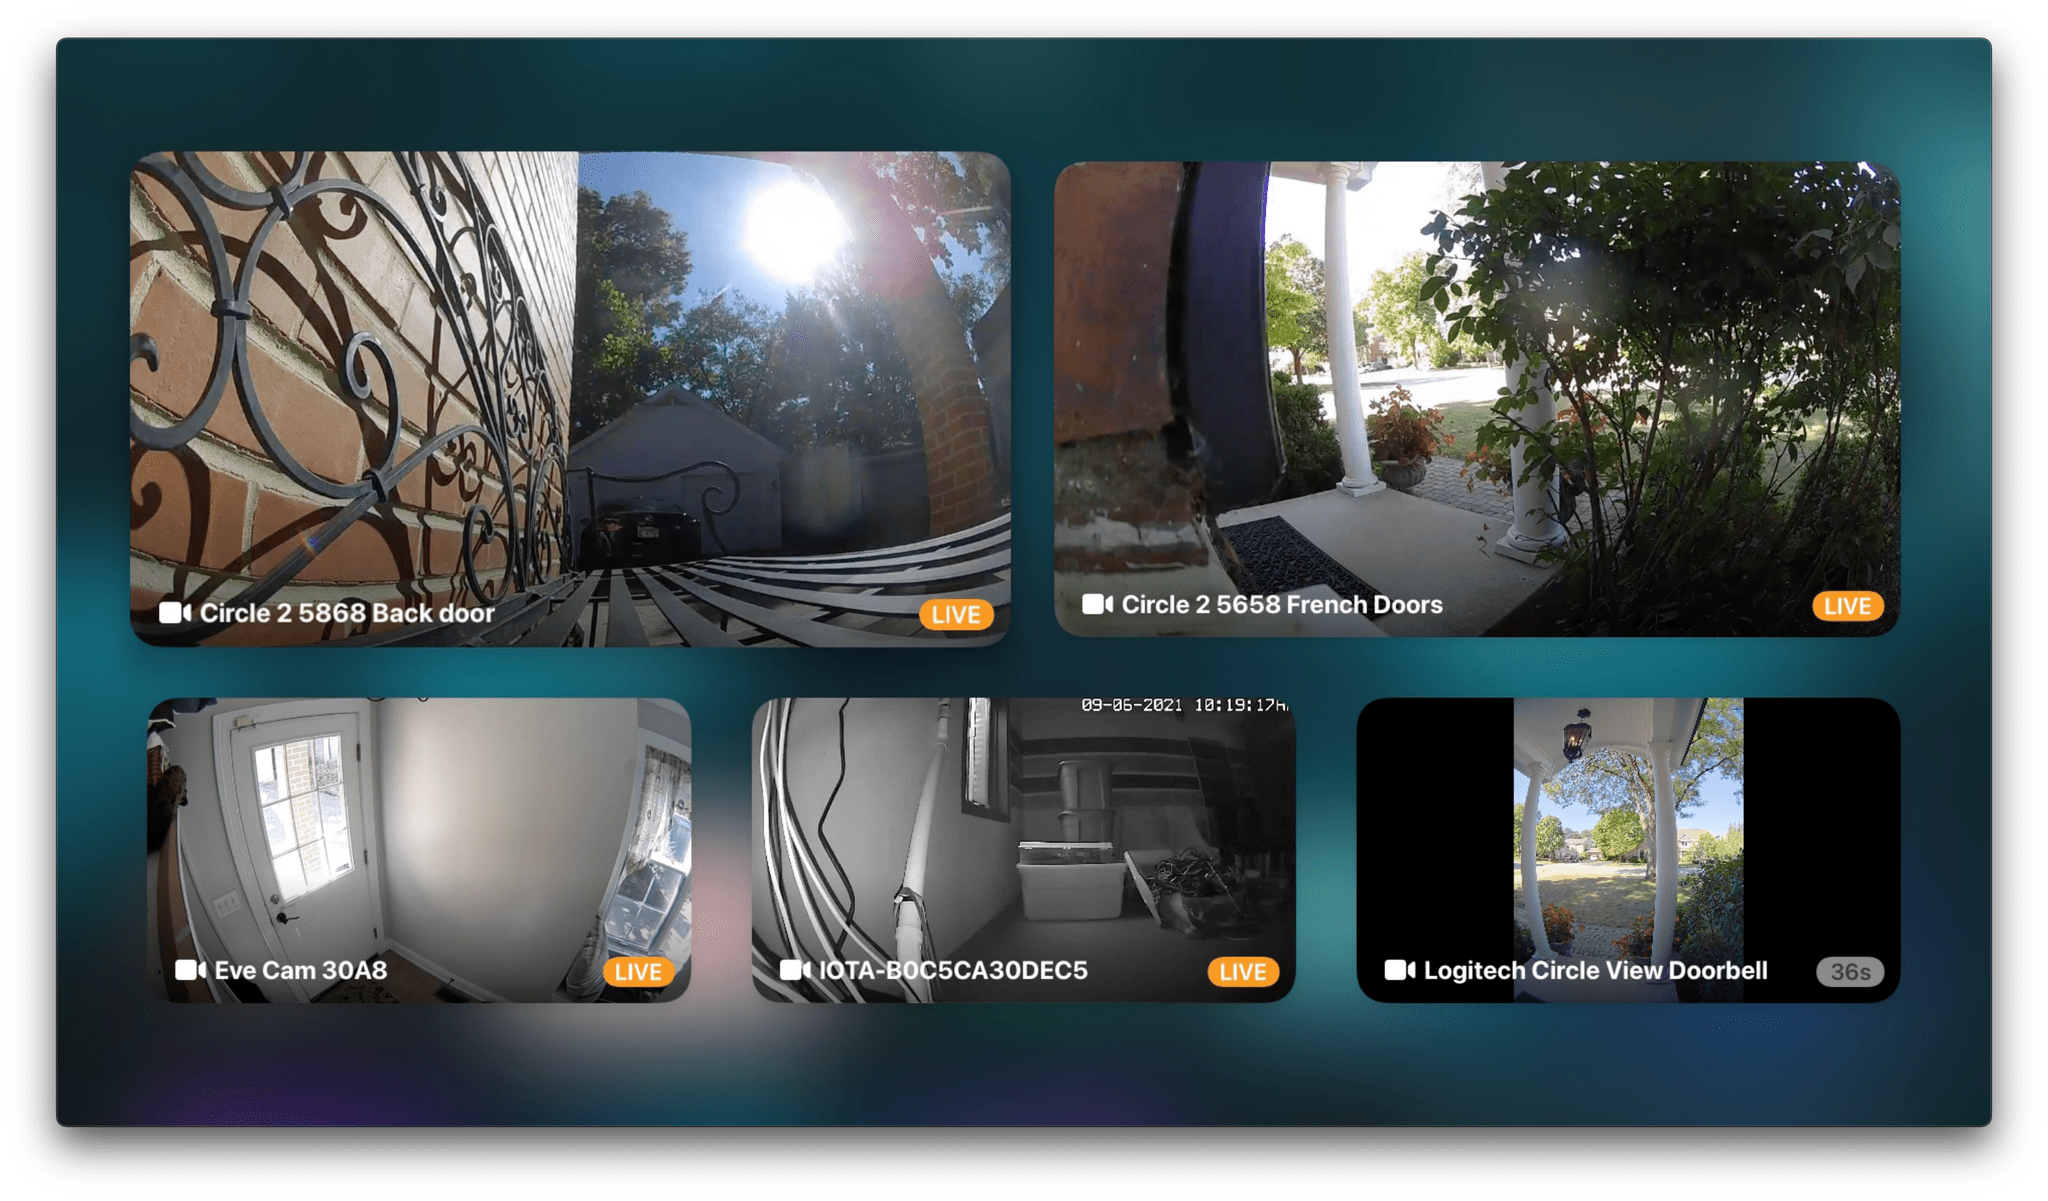 Displaying all available cameras in a grid with the Apple TV.